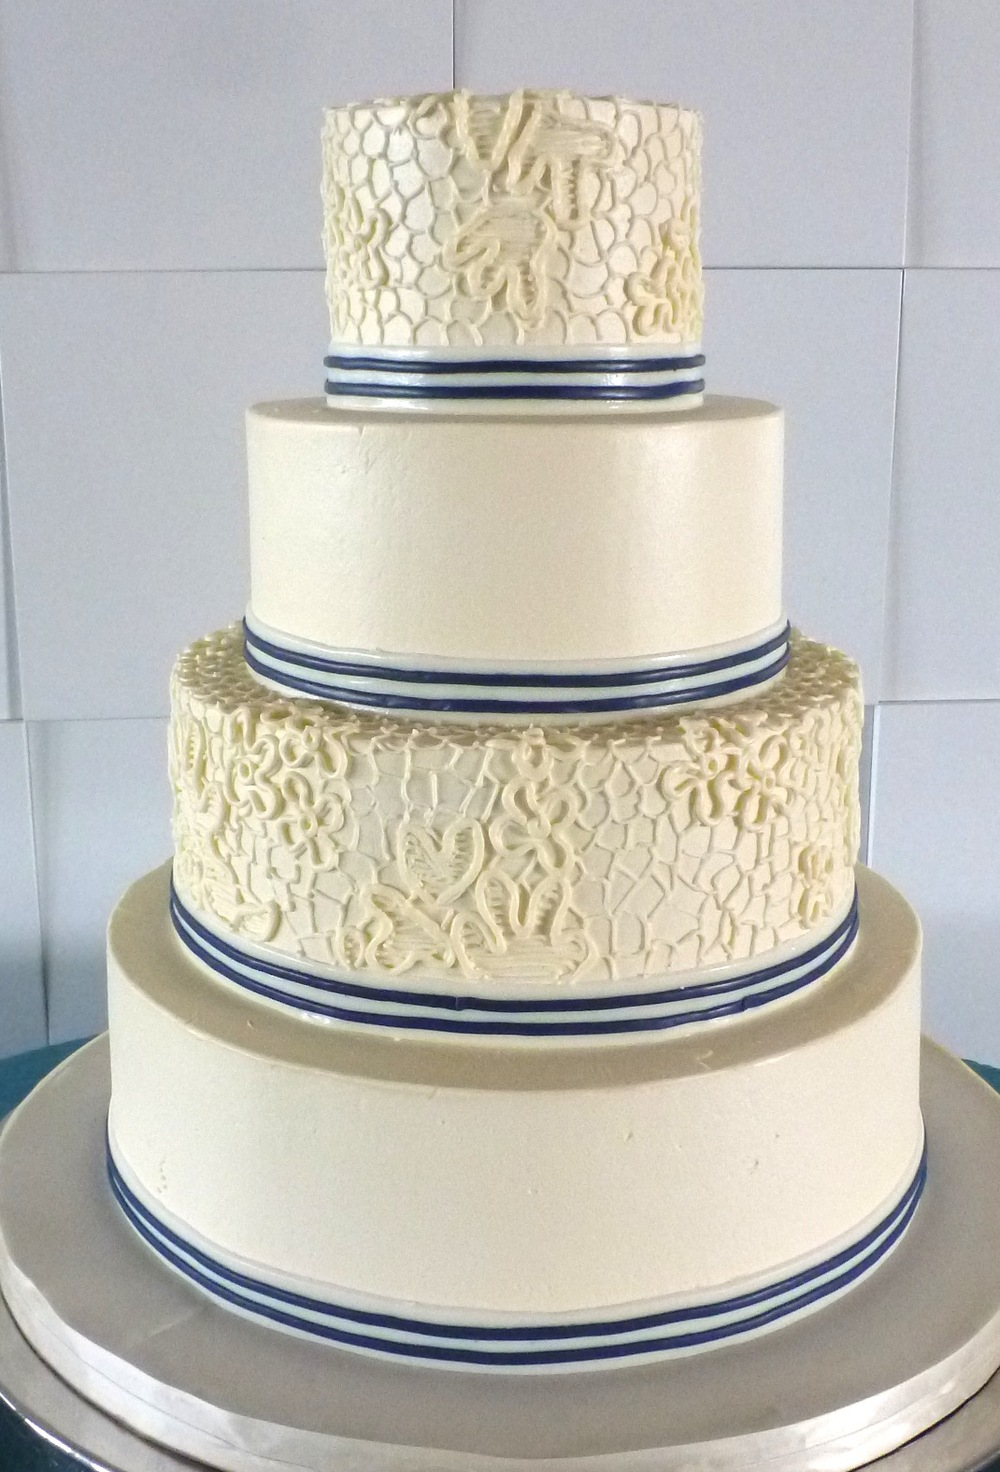 wedding cakes maryland cakes washington dc maryland md wedding cakes northern va 24993